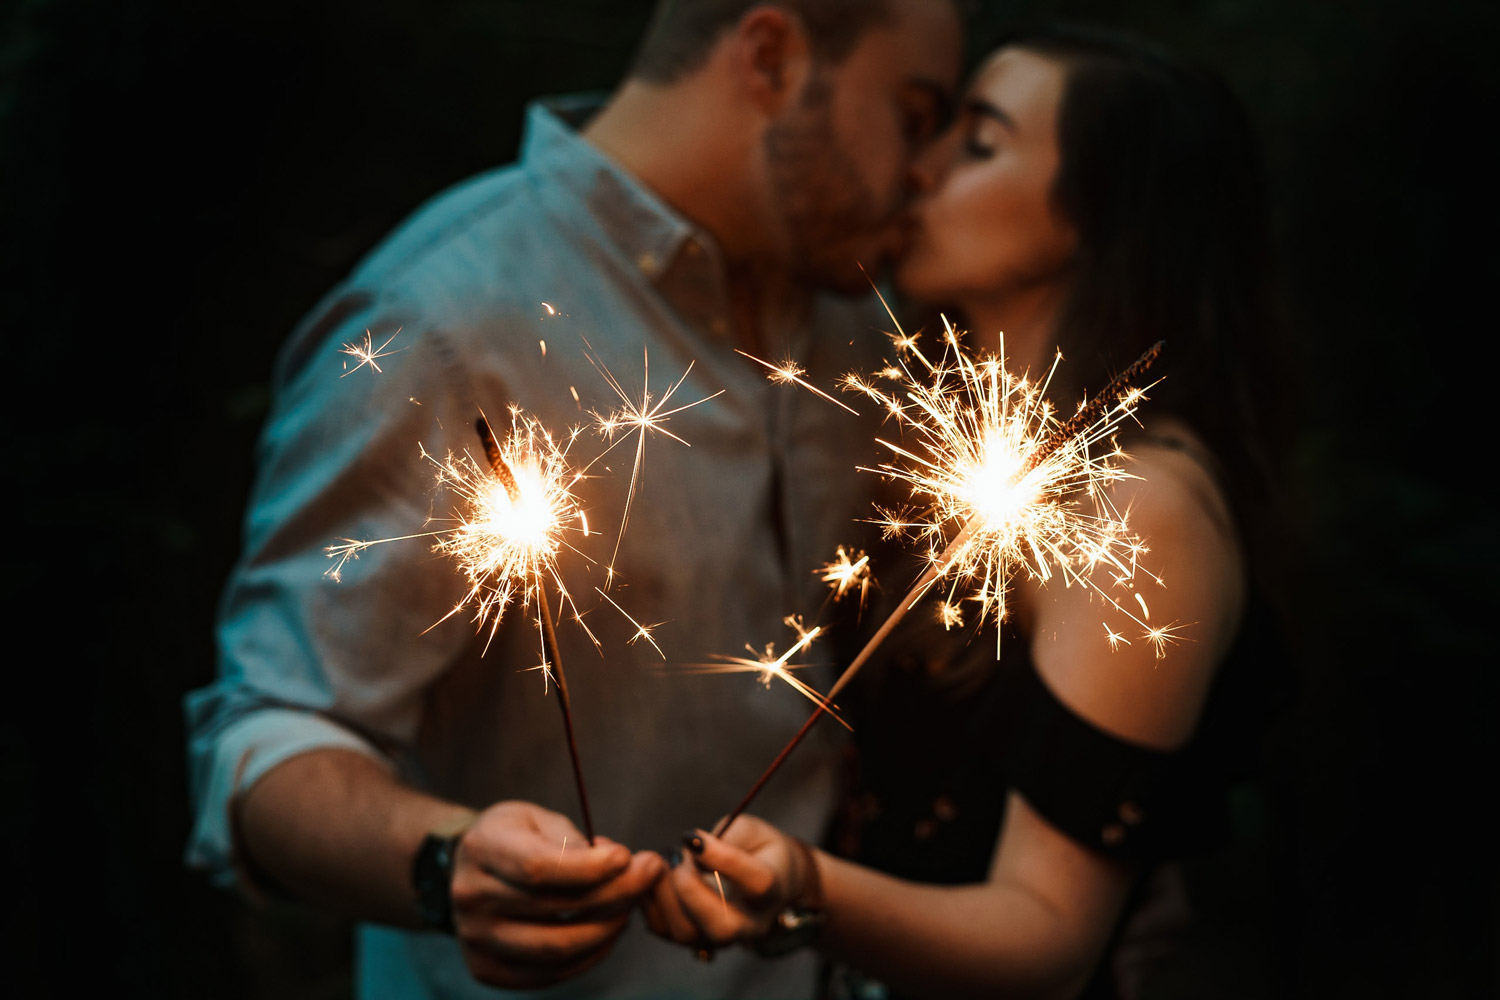 couple with sparklers relationship problems therapy